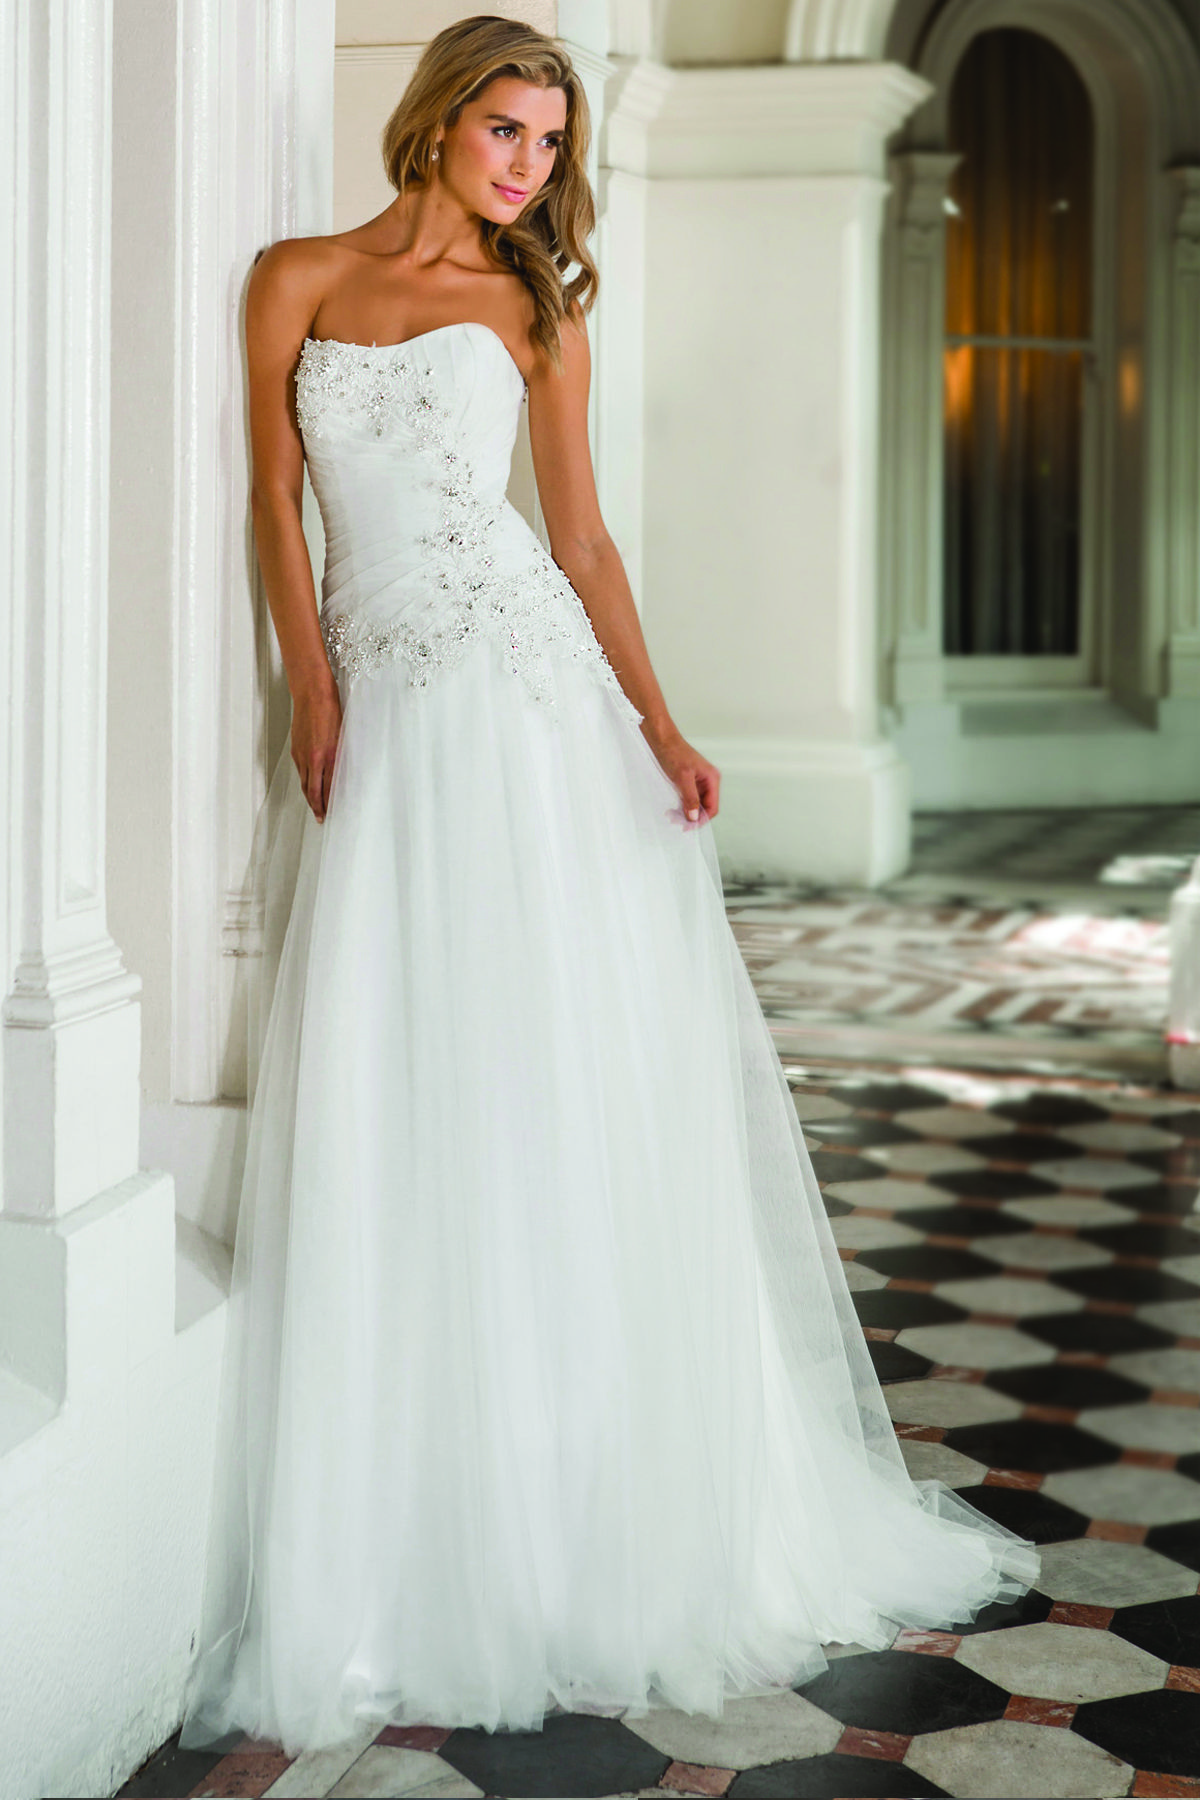 Wedding Summer Dresses For Weddings ideal summer dresses for wedding dress ideas with we 17 best images about on pinterest romantic beach and dresses